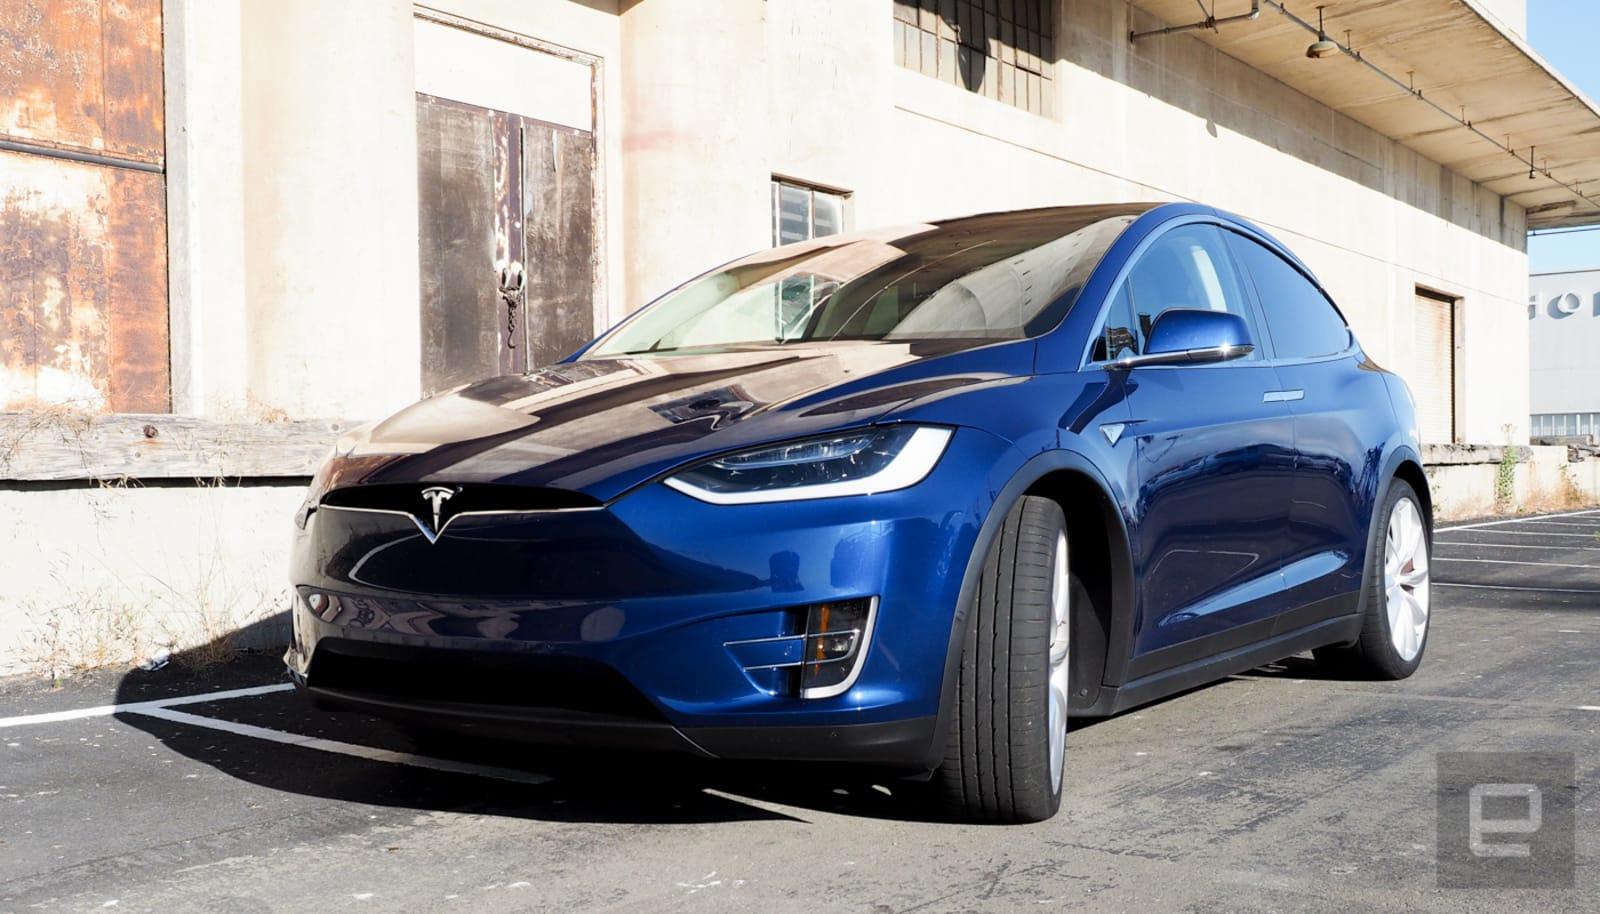 NHTSA reviews claims Tesla should have recalled 2,000 cars